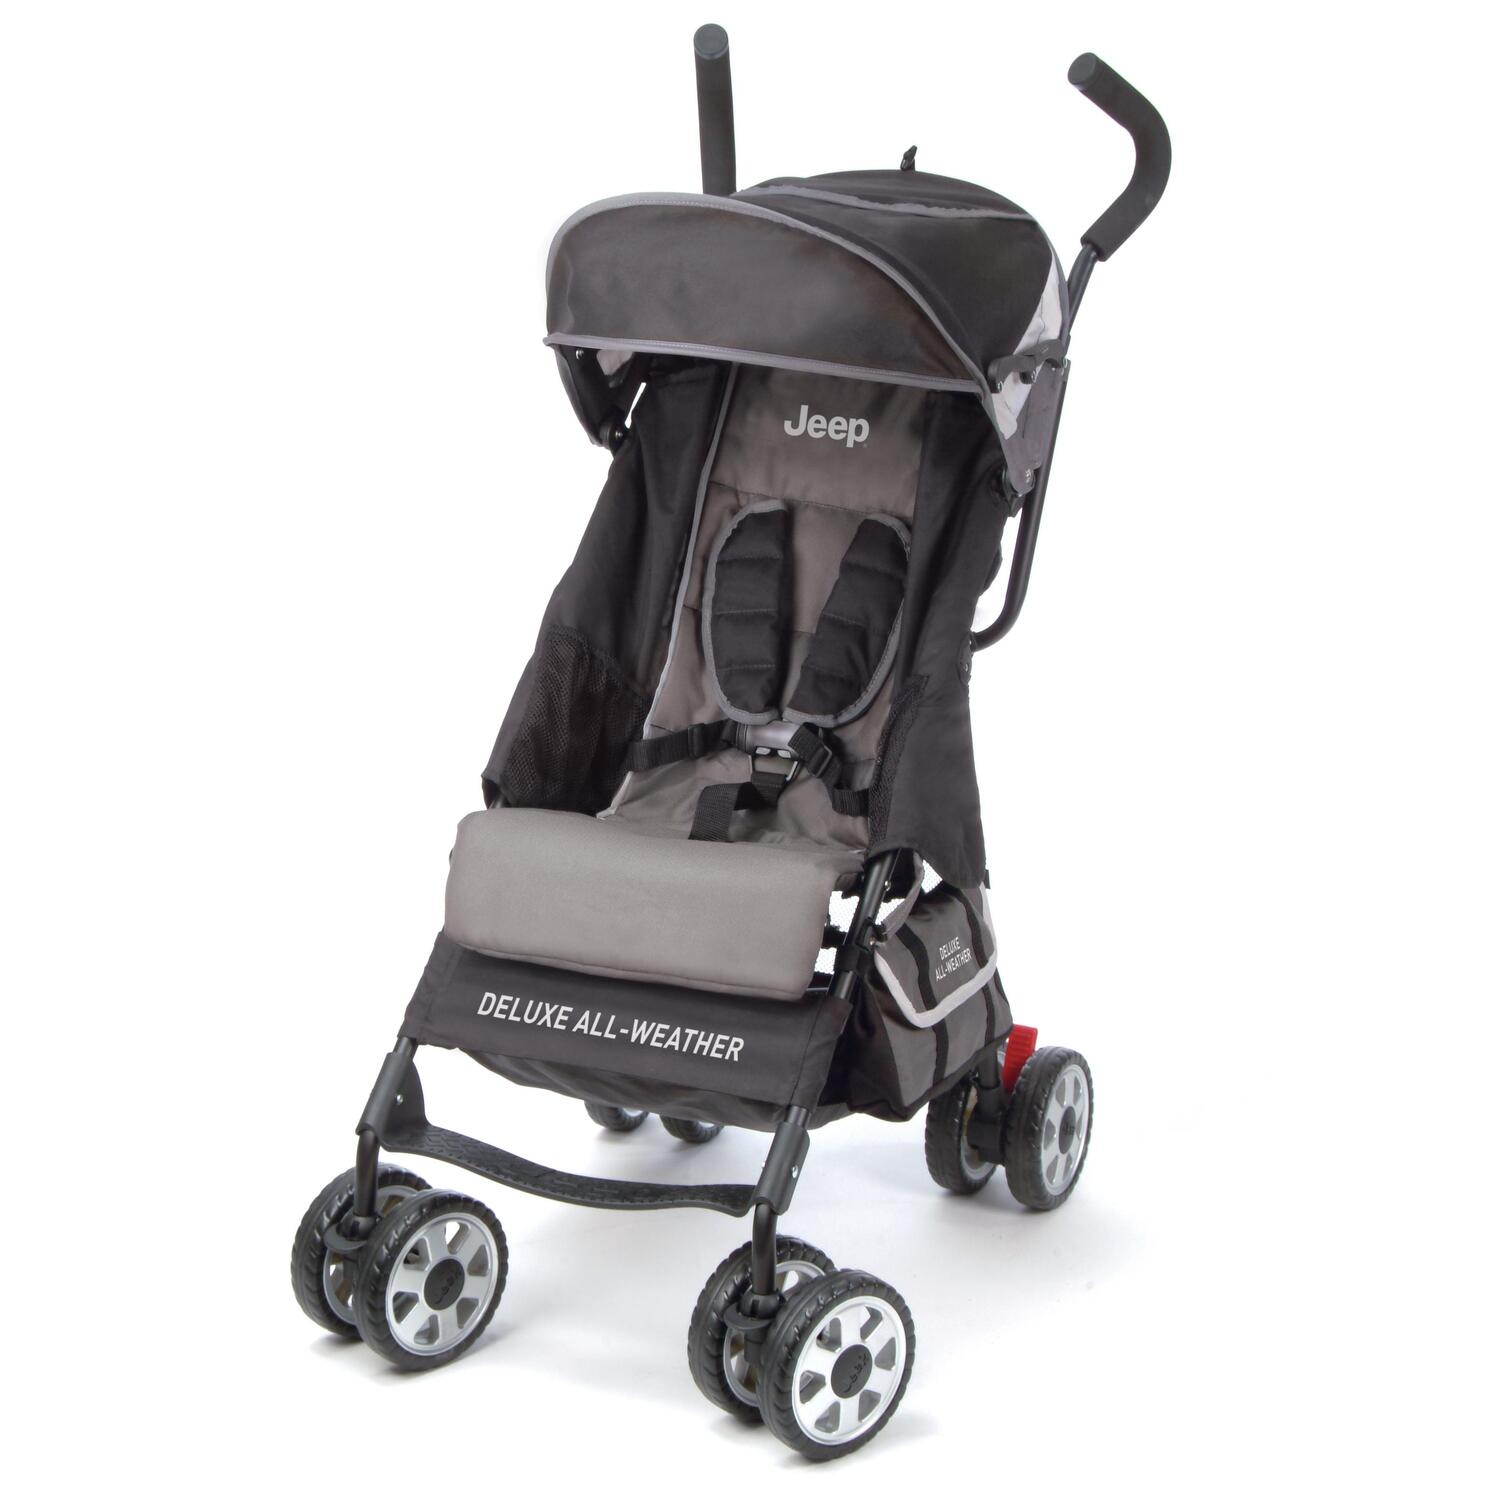 Jeep Jeep Wrangler Rubicon All-Weather Stroller by OJ Commerce JU017-XCR1 - $131.99